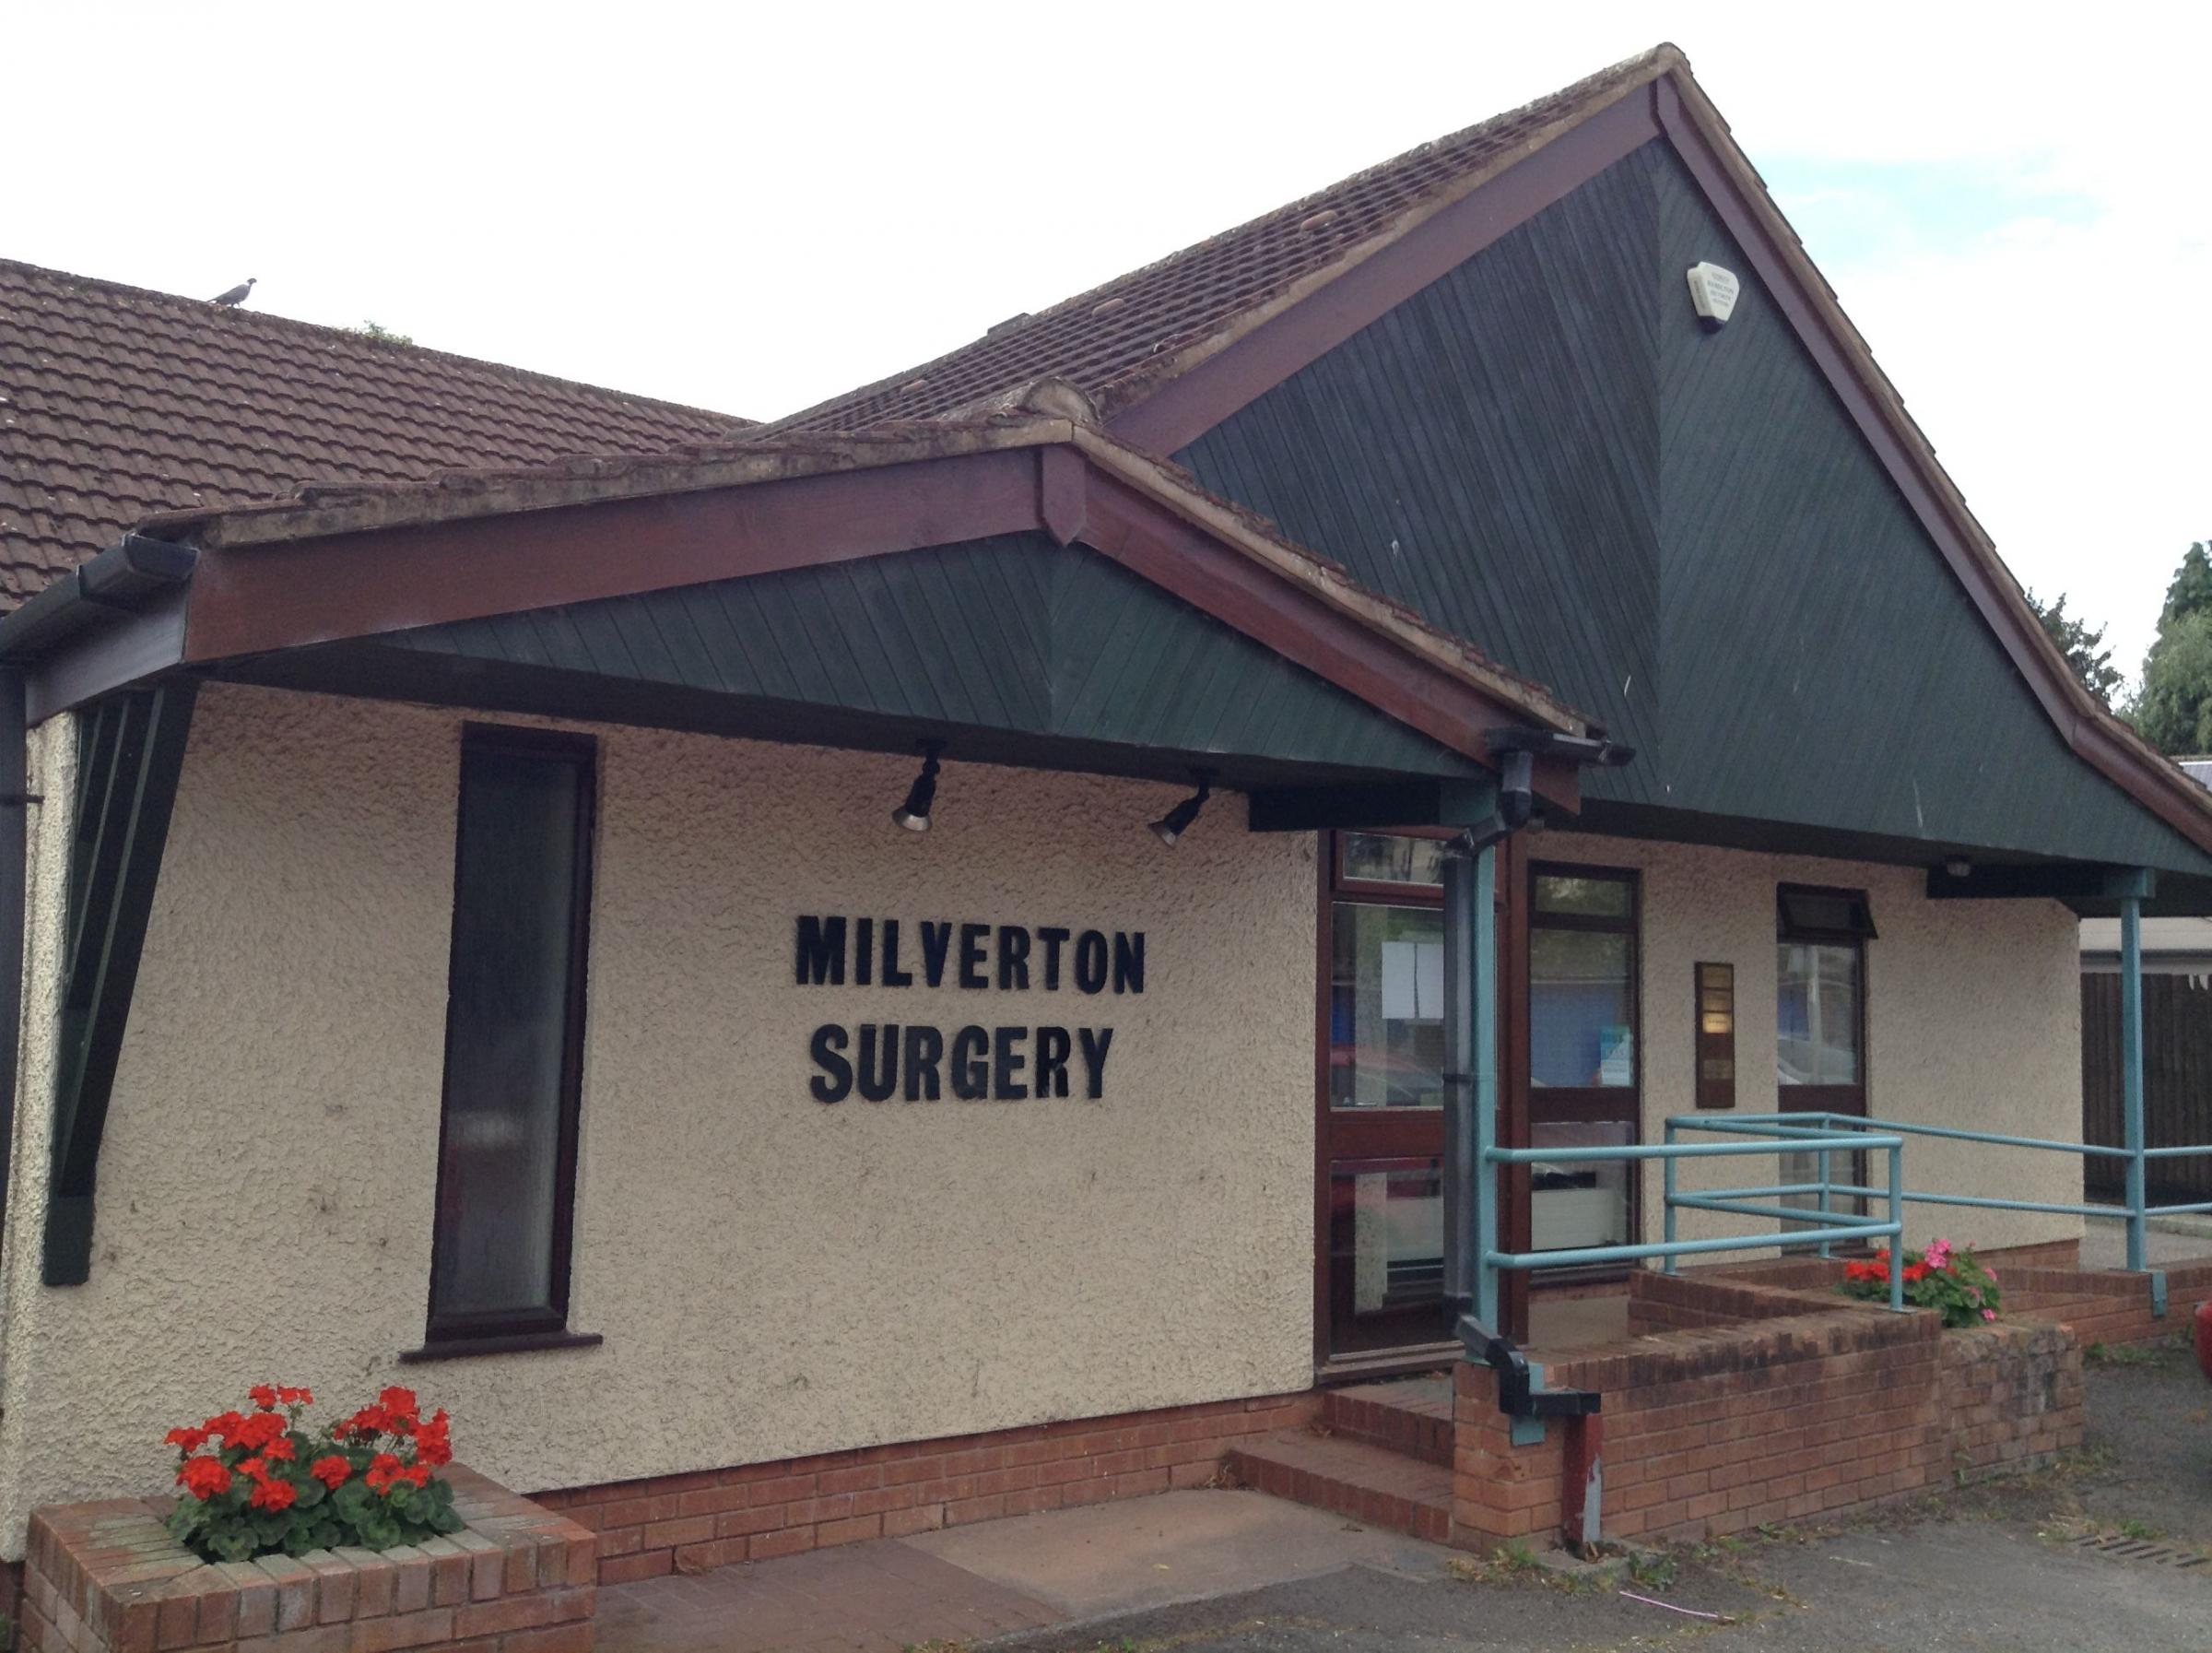 SET TO CLOSE: Milverton Surgery